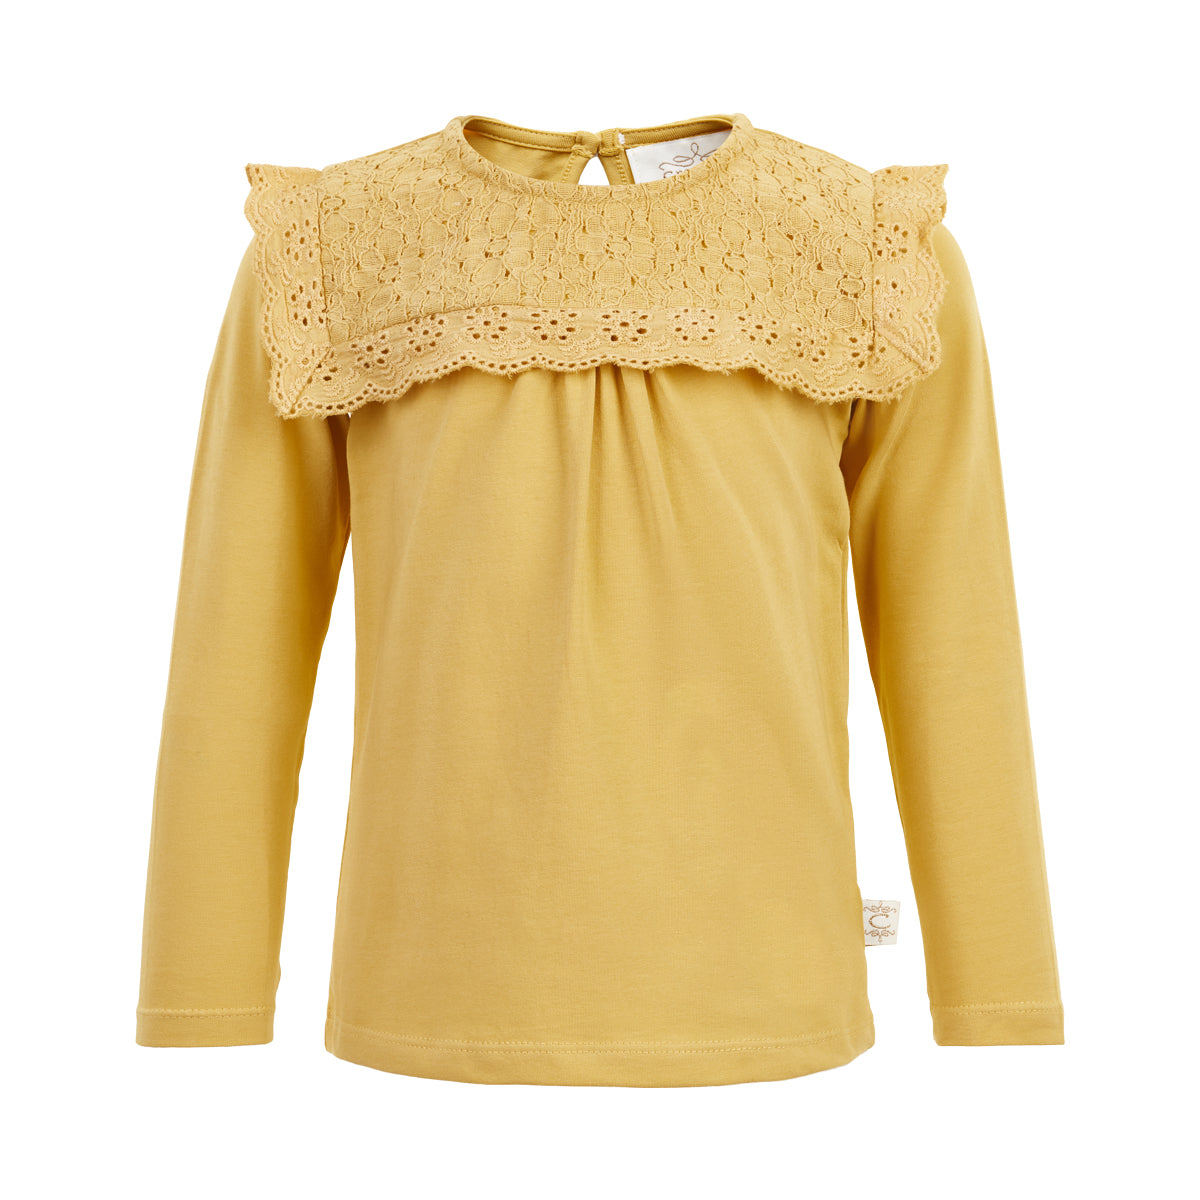 Image of   Creamie - T-shirt LS Lace (840182) - Rattan